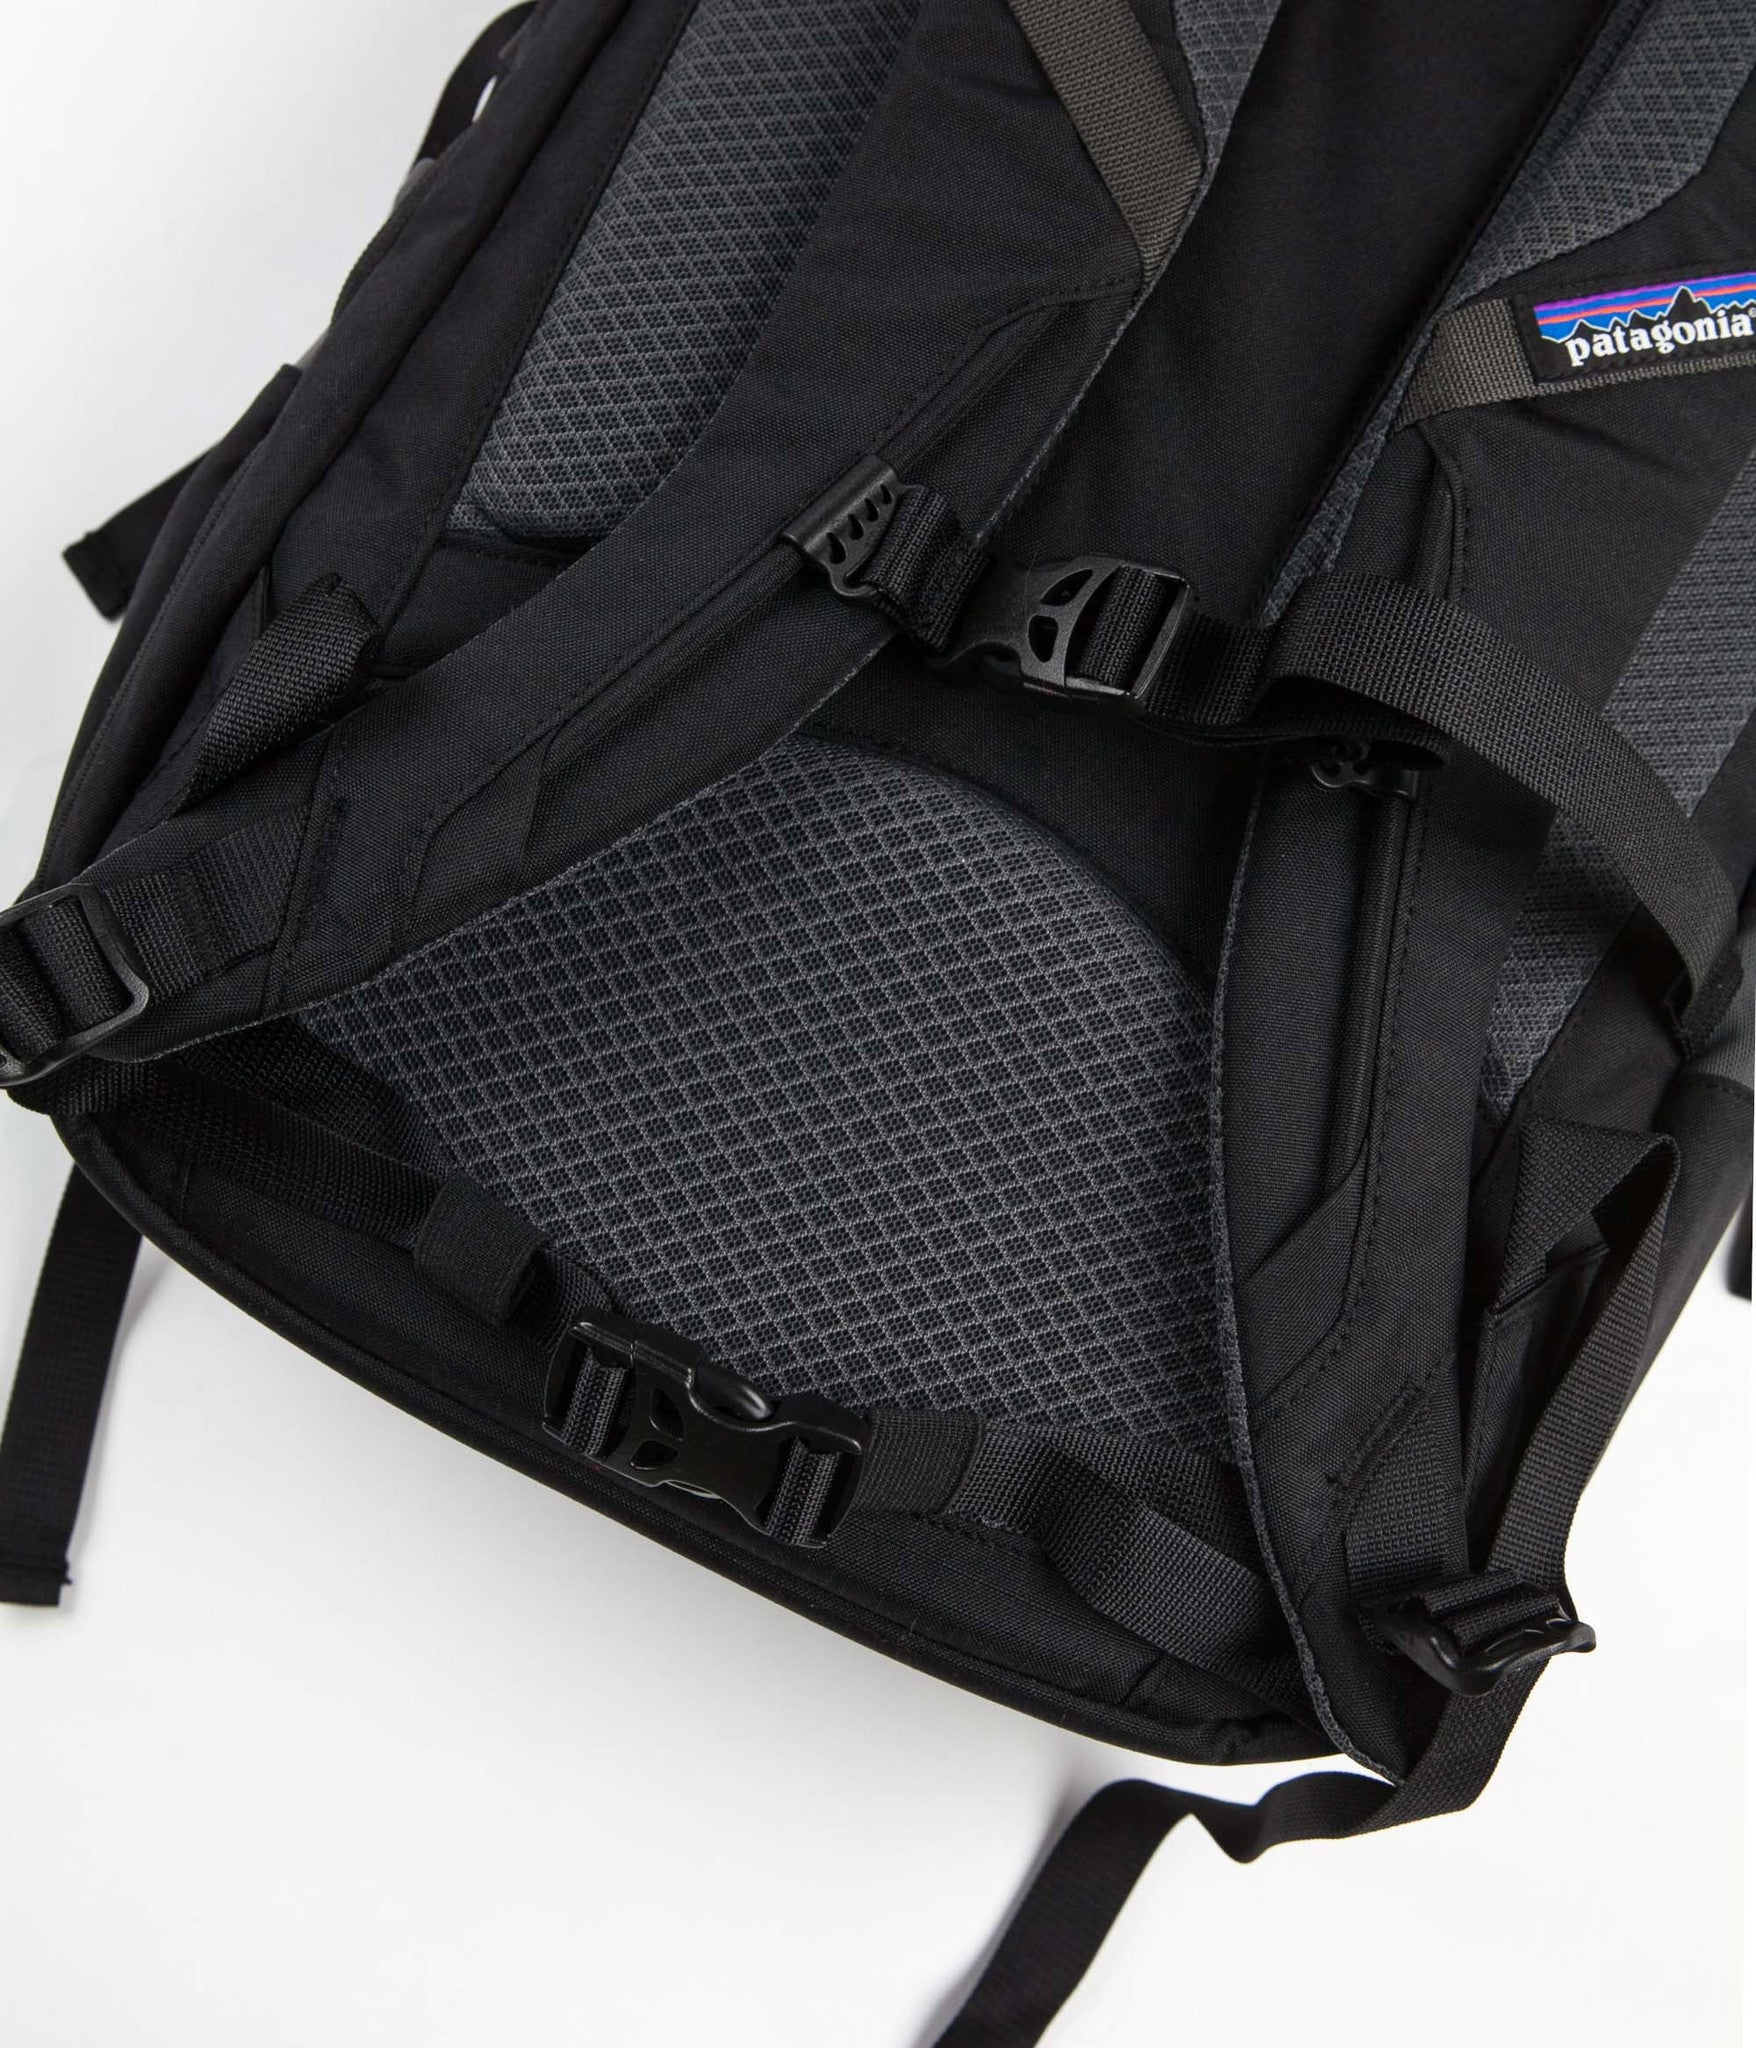 Patagonia Petrolia Backpack - Black